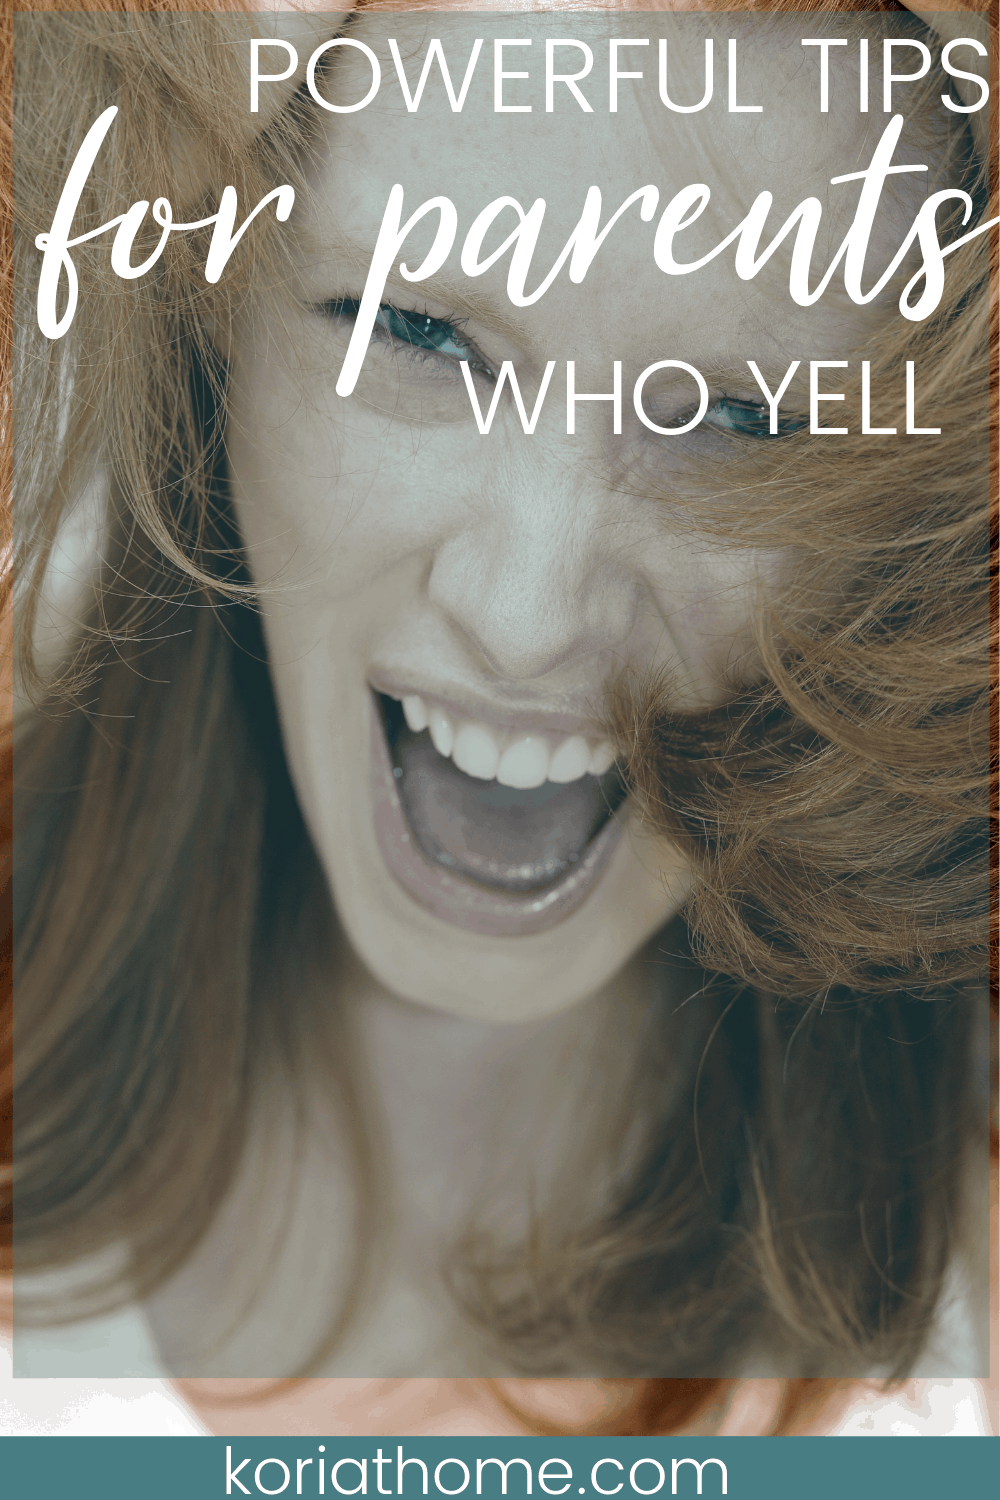 Powerful Tips for Parents Who Yell (and what to do instead) 1